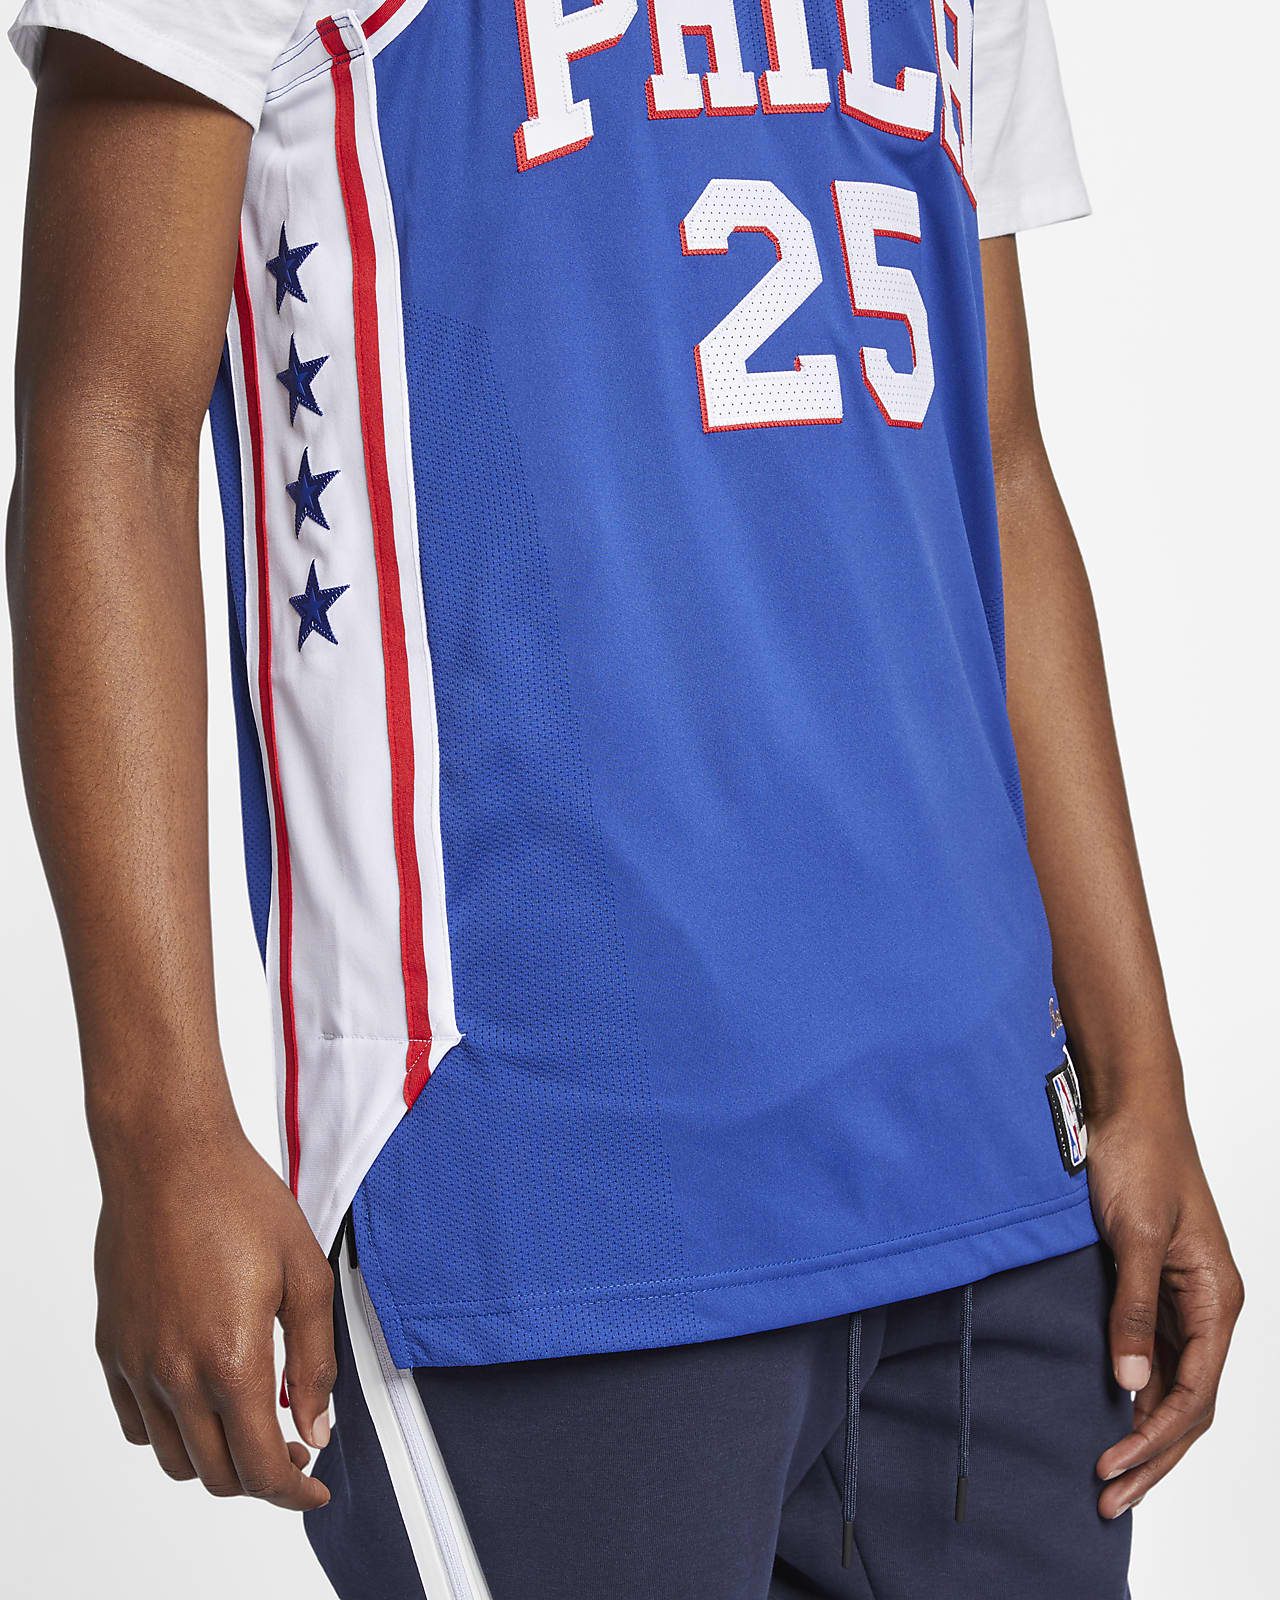 76ers authentic jersey